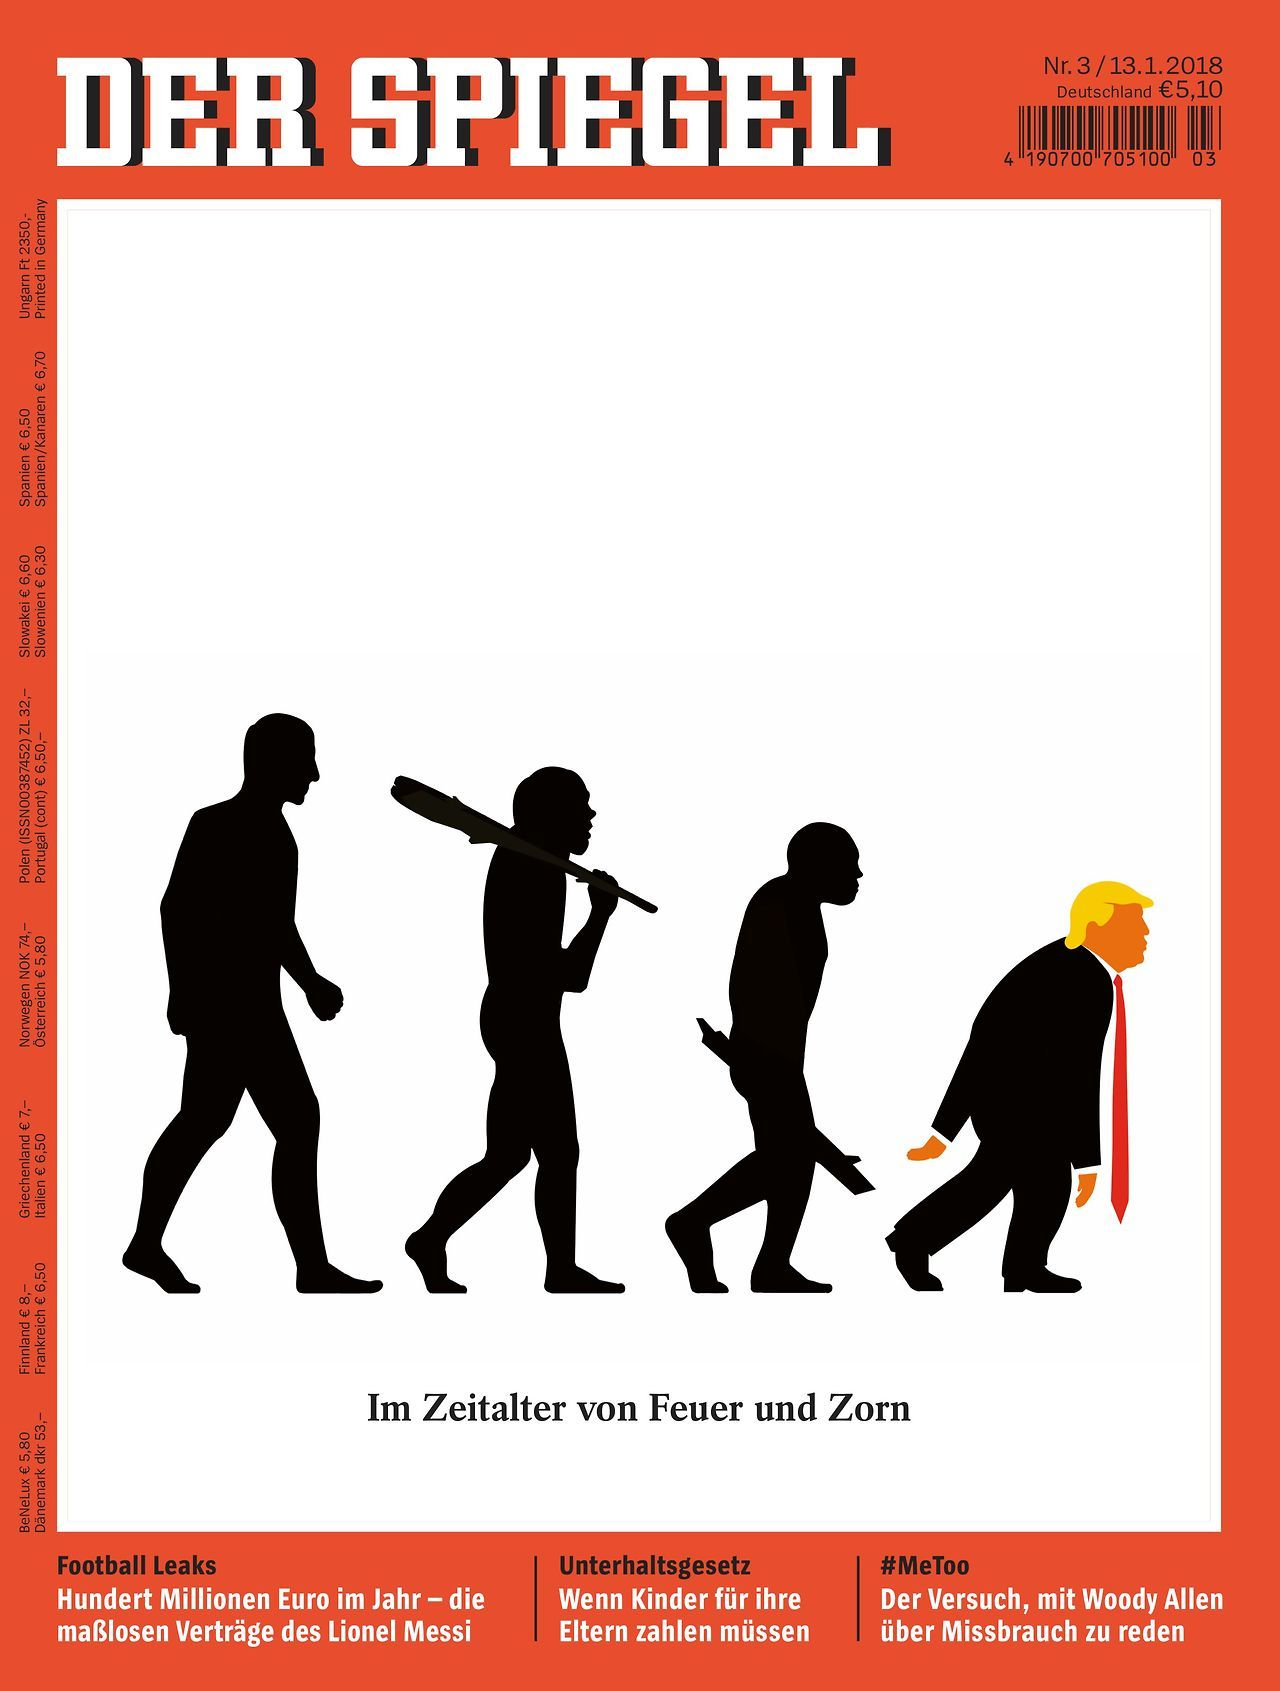 Kinder Spiegel Coverjunkie New Trump Cover Der Spiegel Magazine Artword Edel